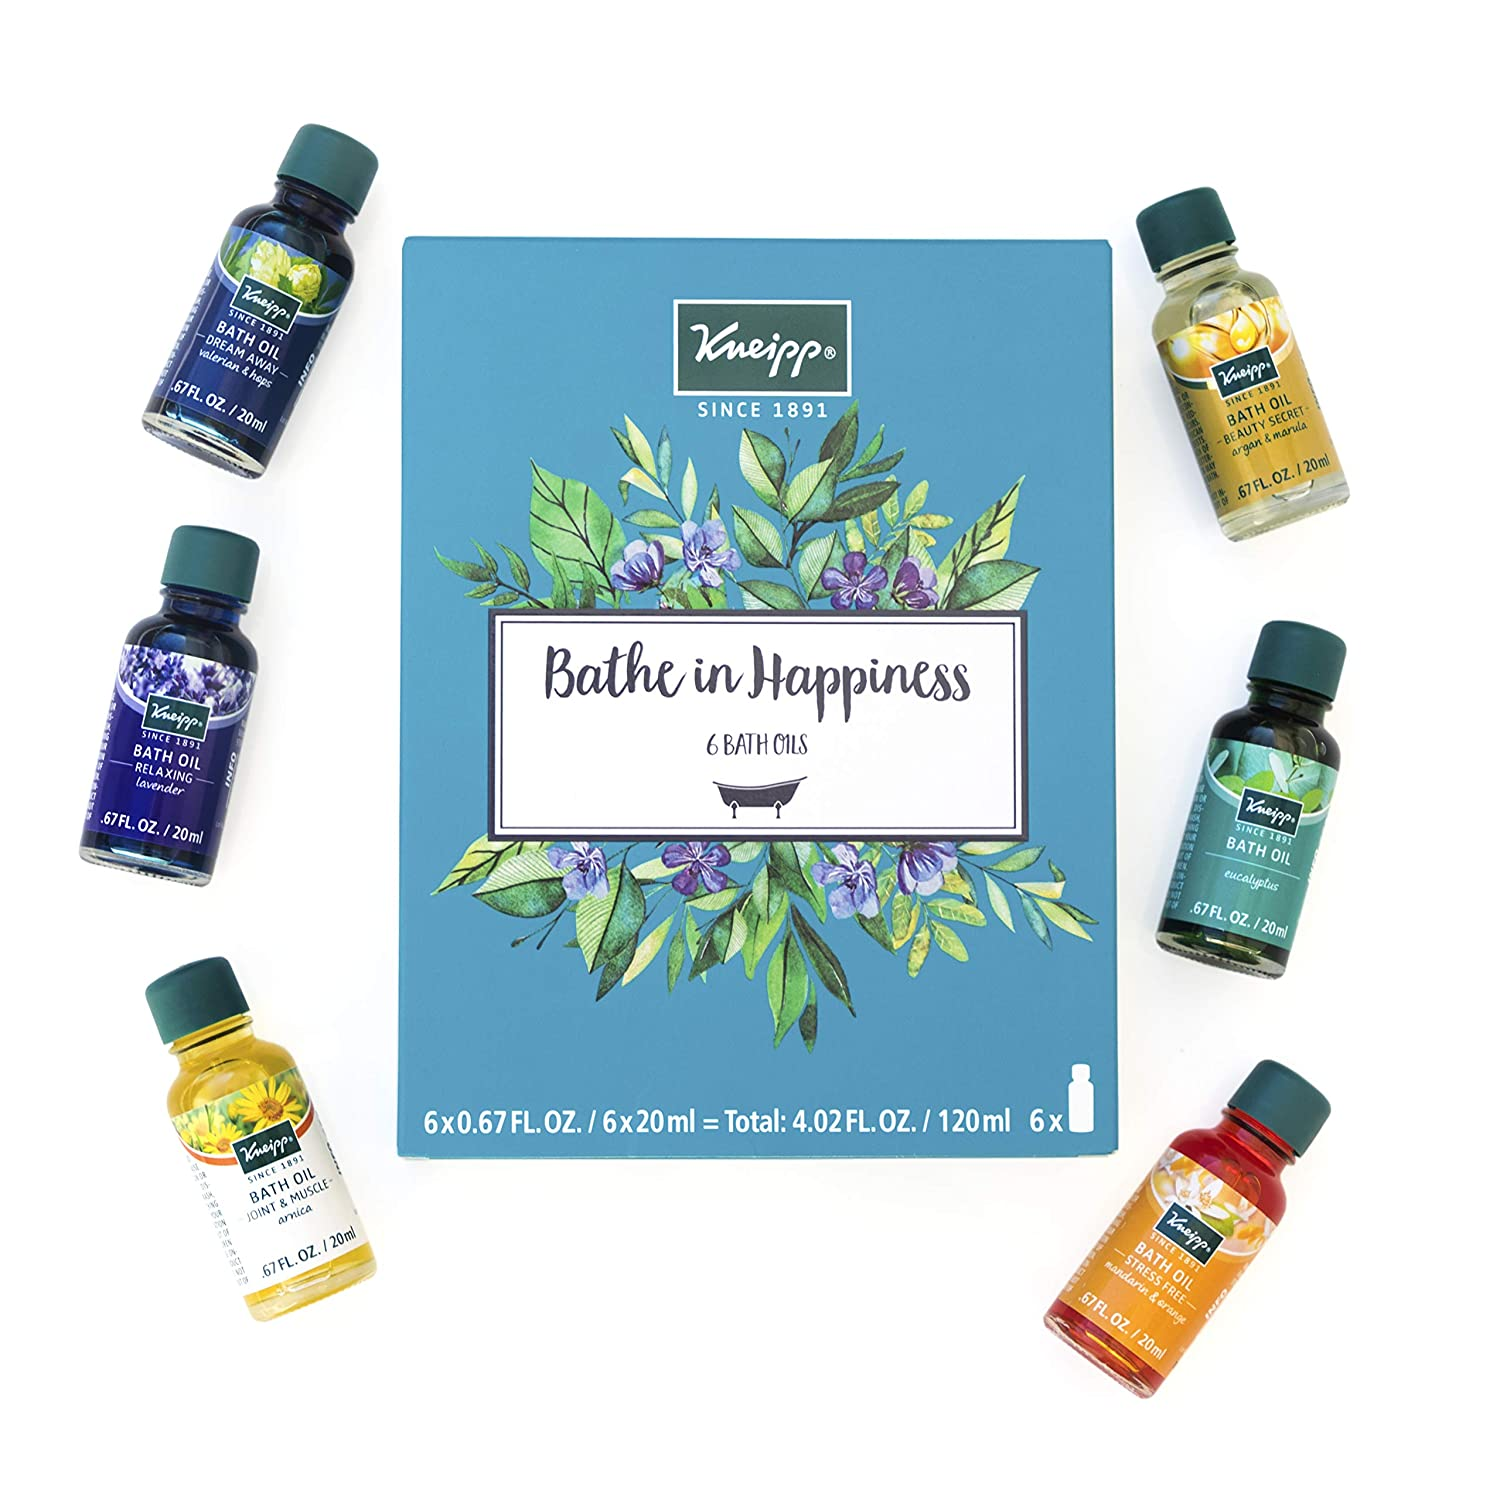 Kneipp 6 Piece Herbal Bath Oil Set, 6 x 20 Milliliter Bottles : Bath And Shower Product Sets : Beauty